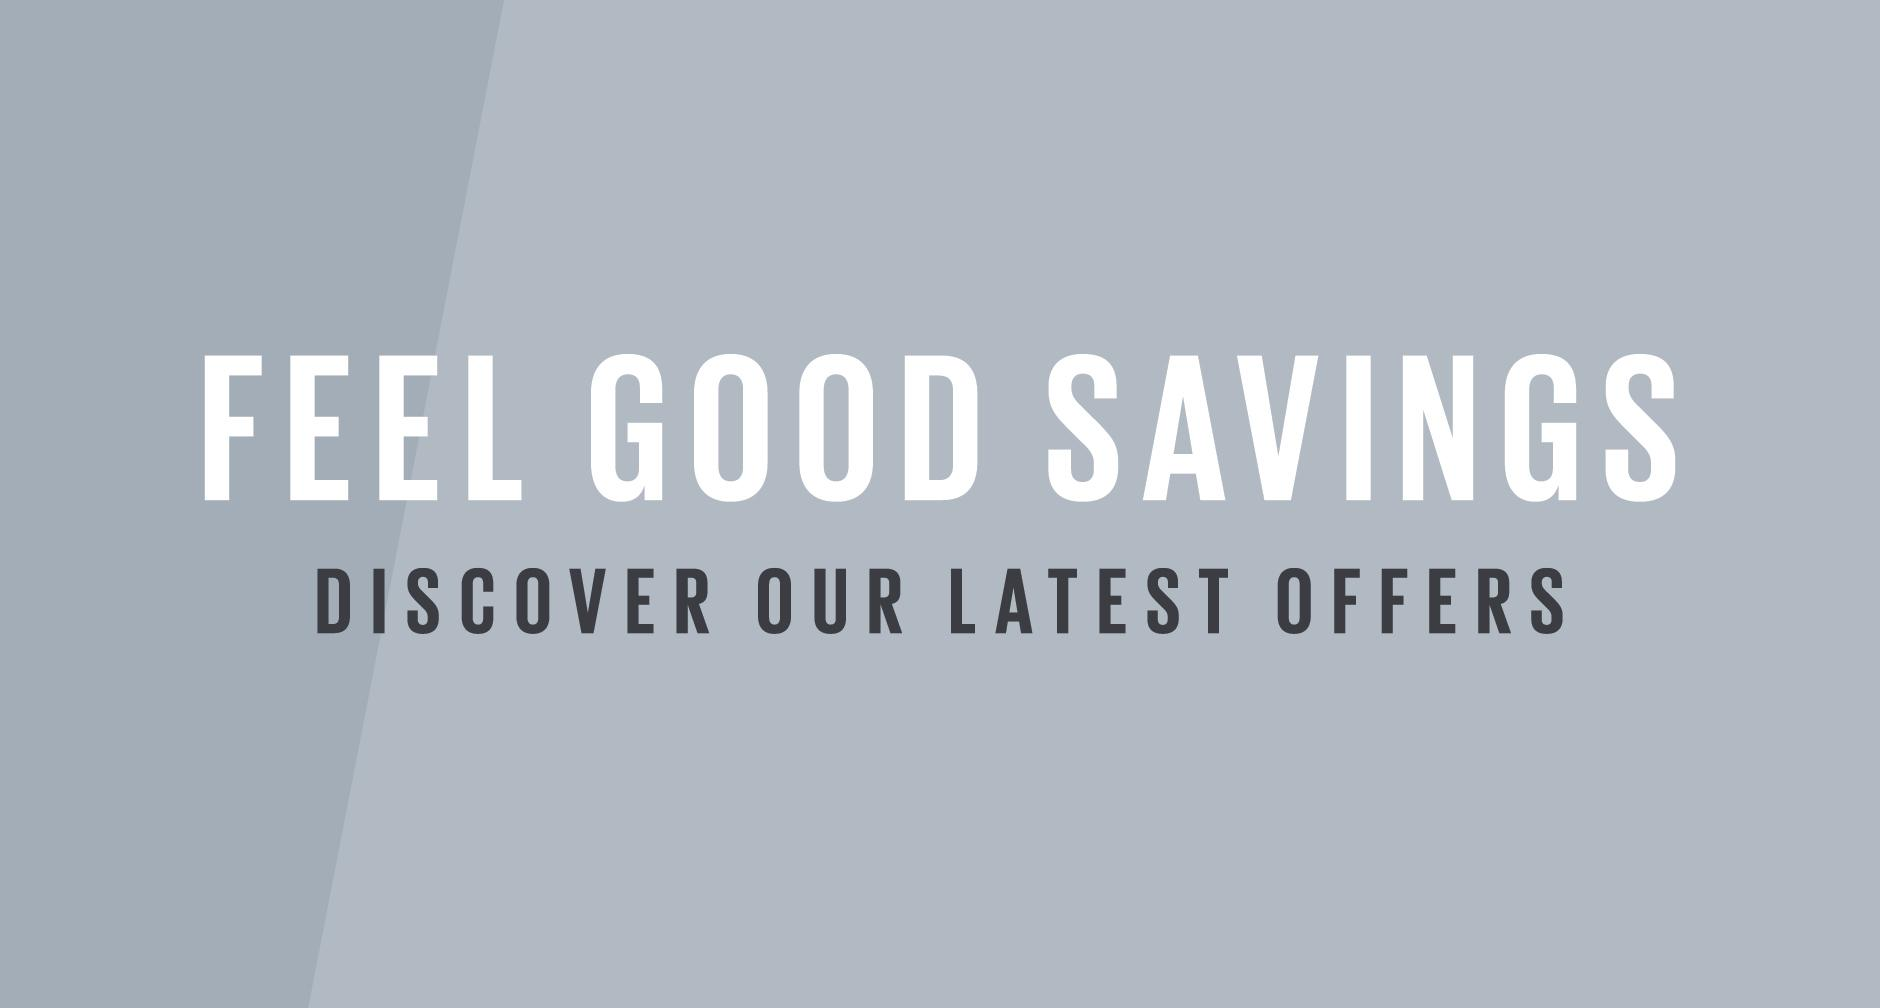 Feel good savings.